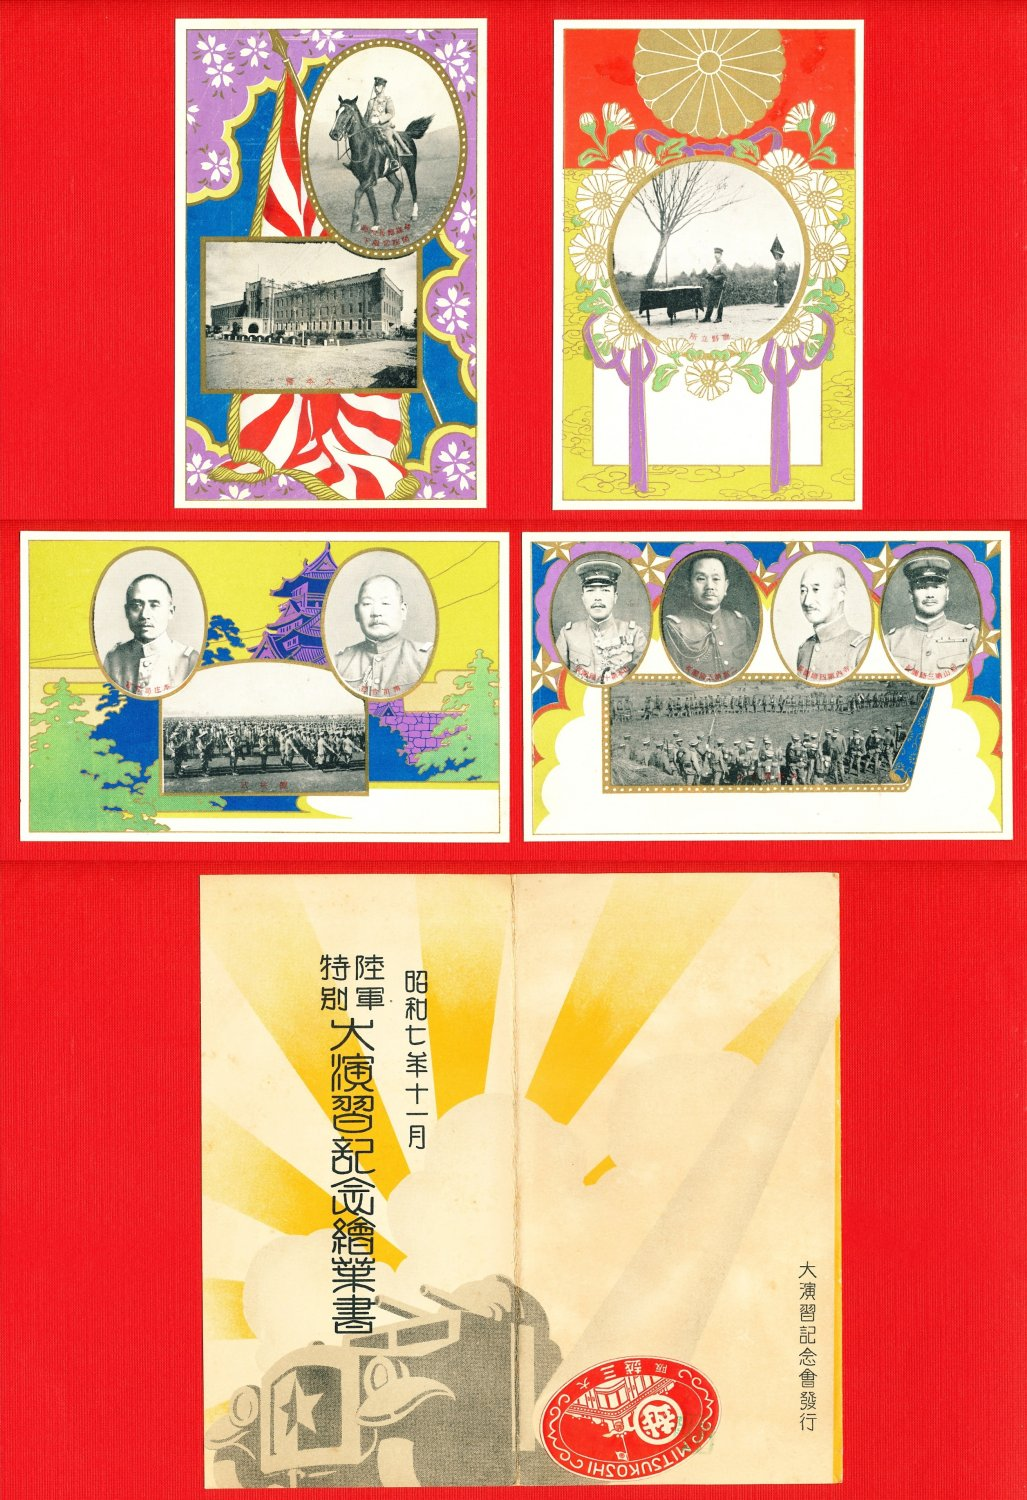 Set of 4 JAPAN Japanese Postcards w/ Folder Army Maneuvers in 1932 Emperor SHOWA #EM168